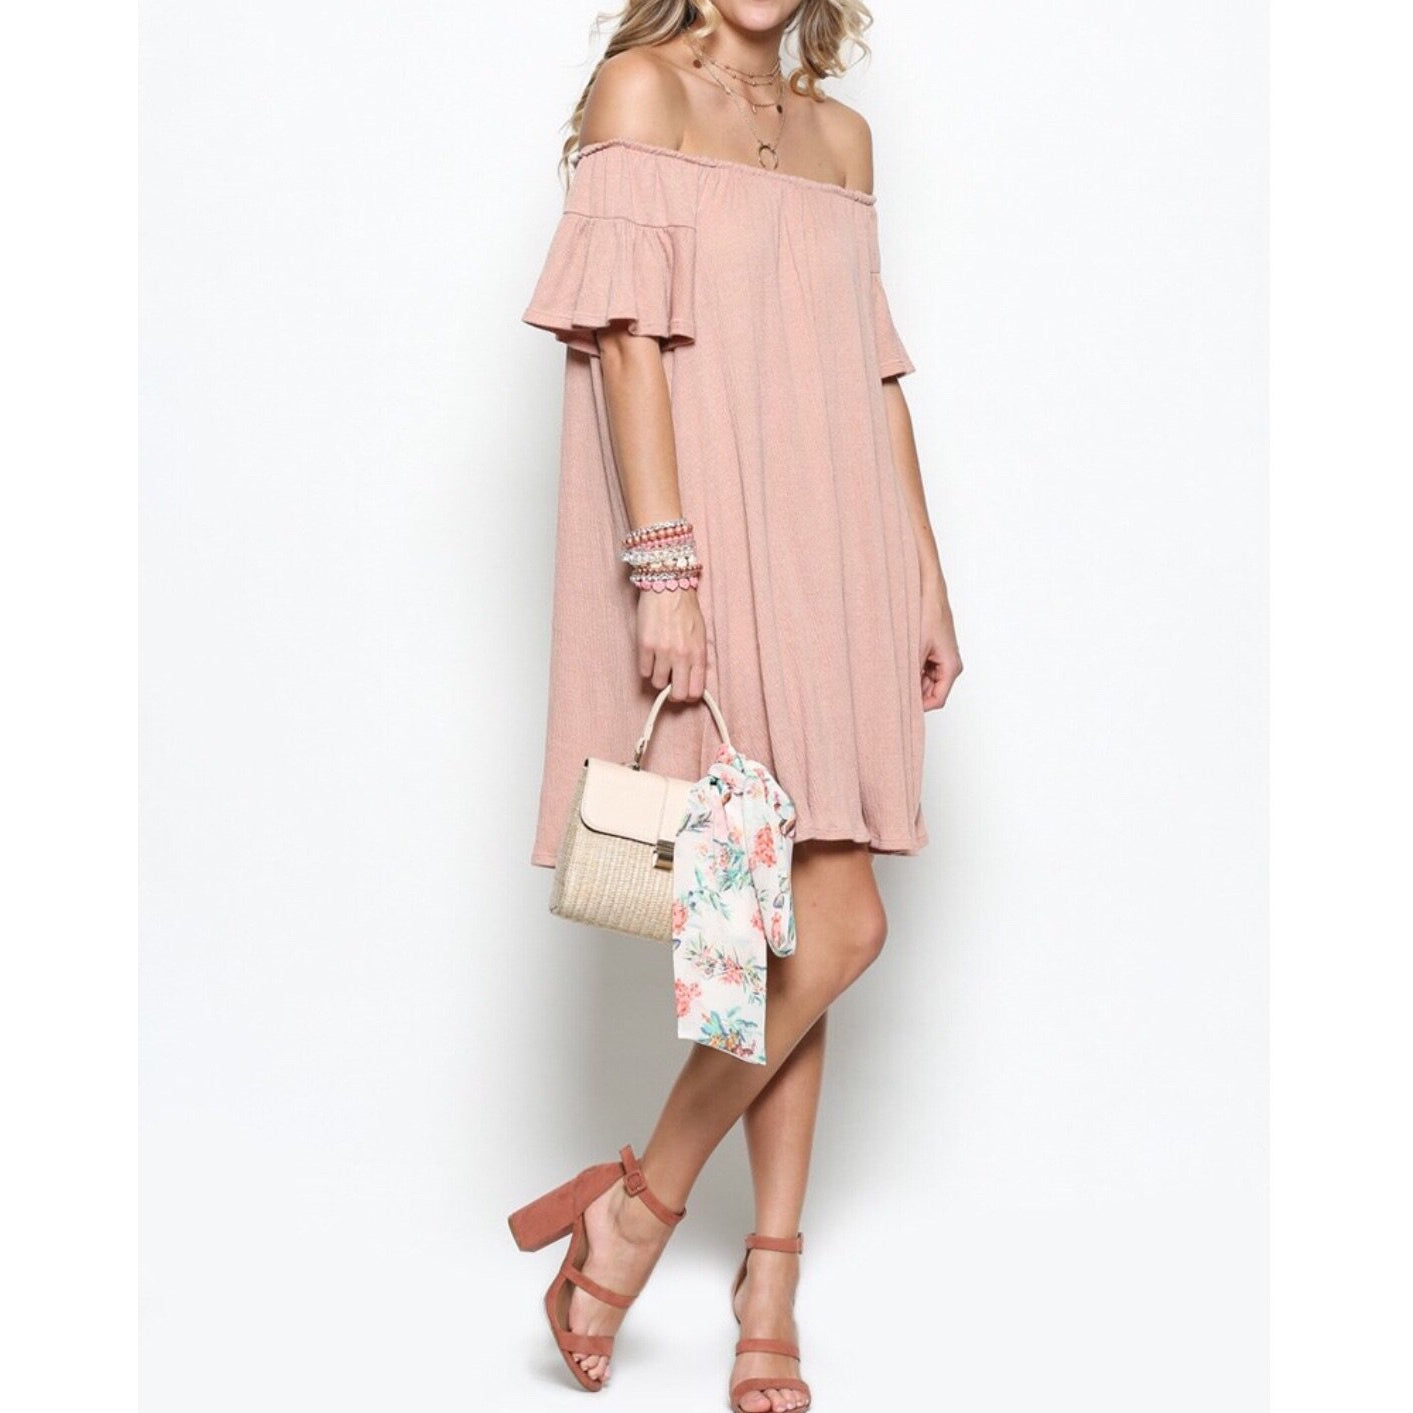 Taylor Off The Shoulder Dress - Glamco Boutique